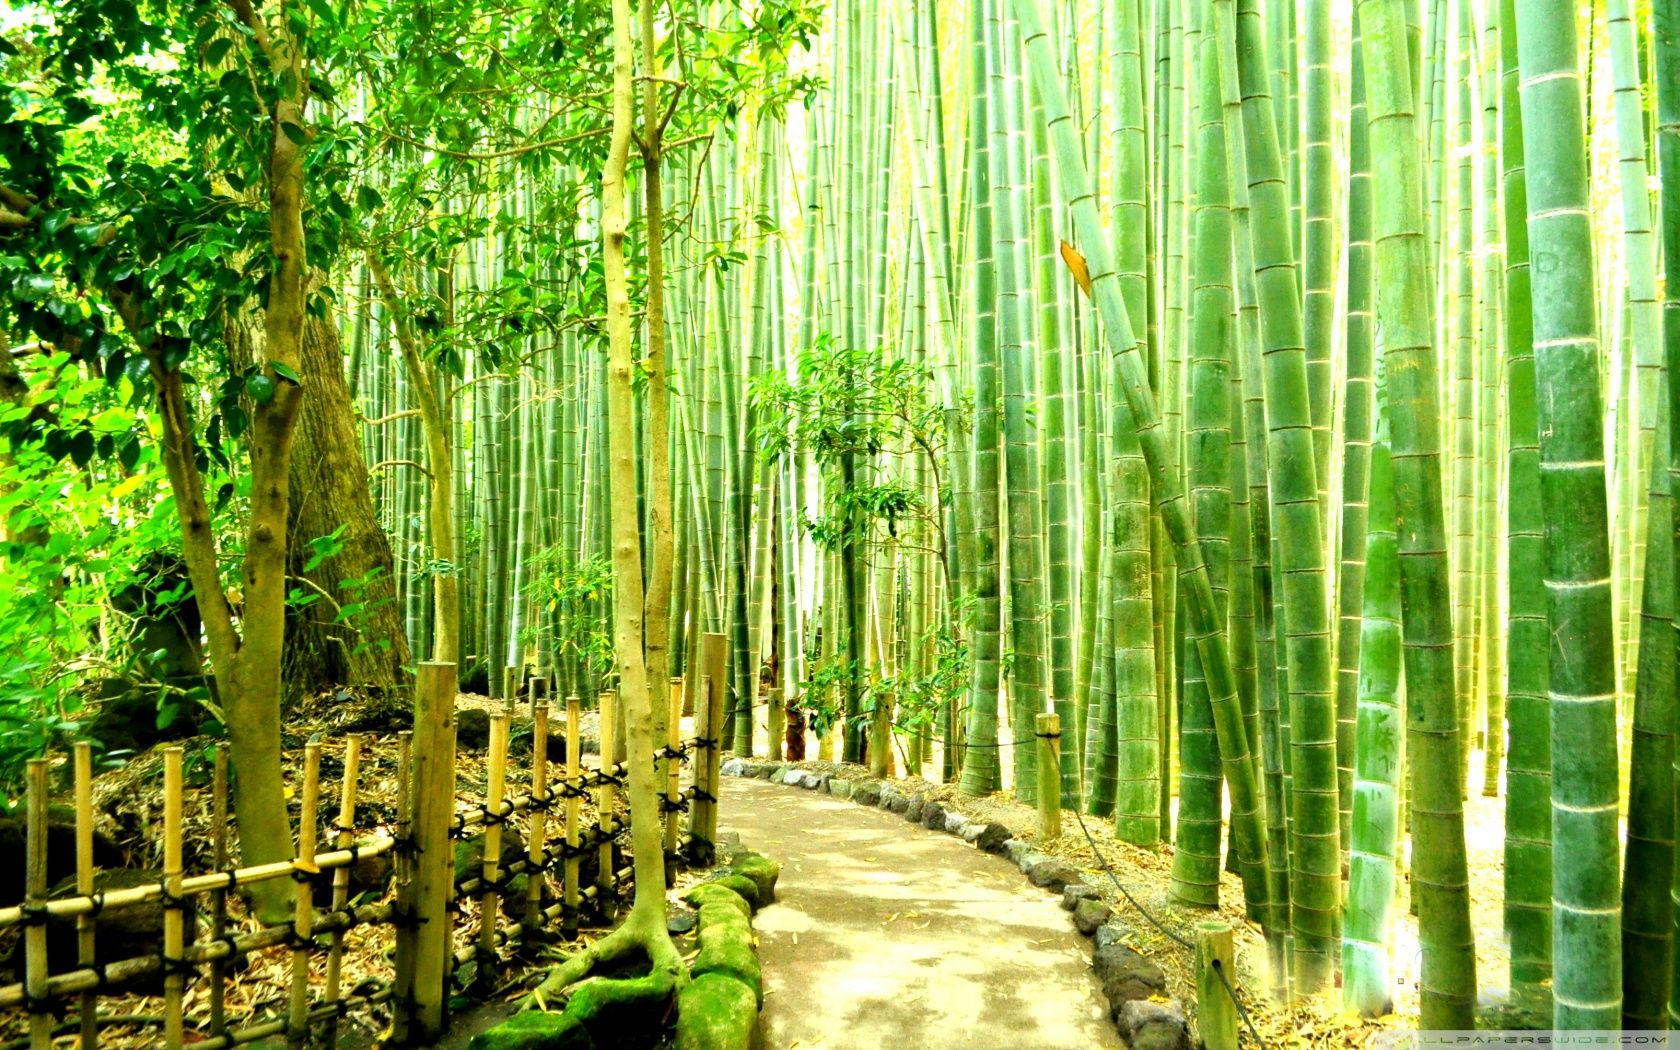 Top 10 Things To Do In Tokyo Bamboo Wallpaper Bamboo Forest Japan Bamboo Tree